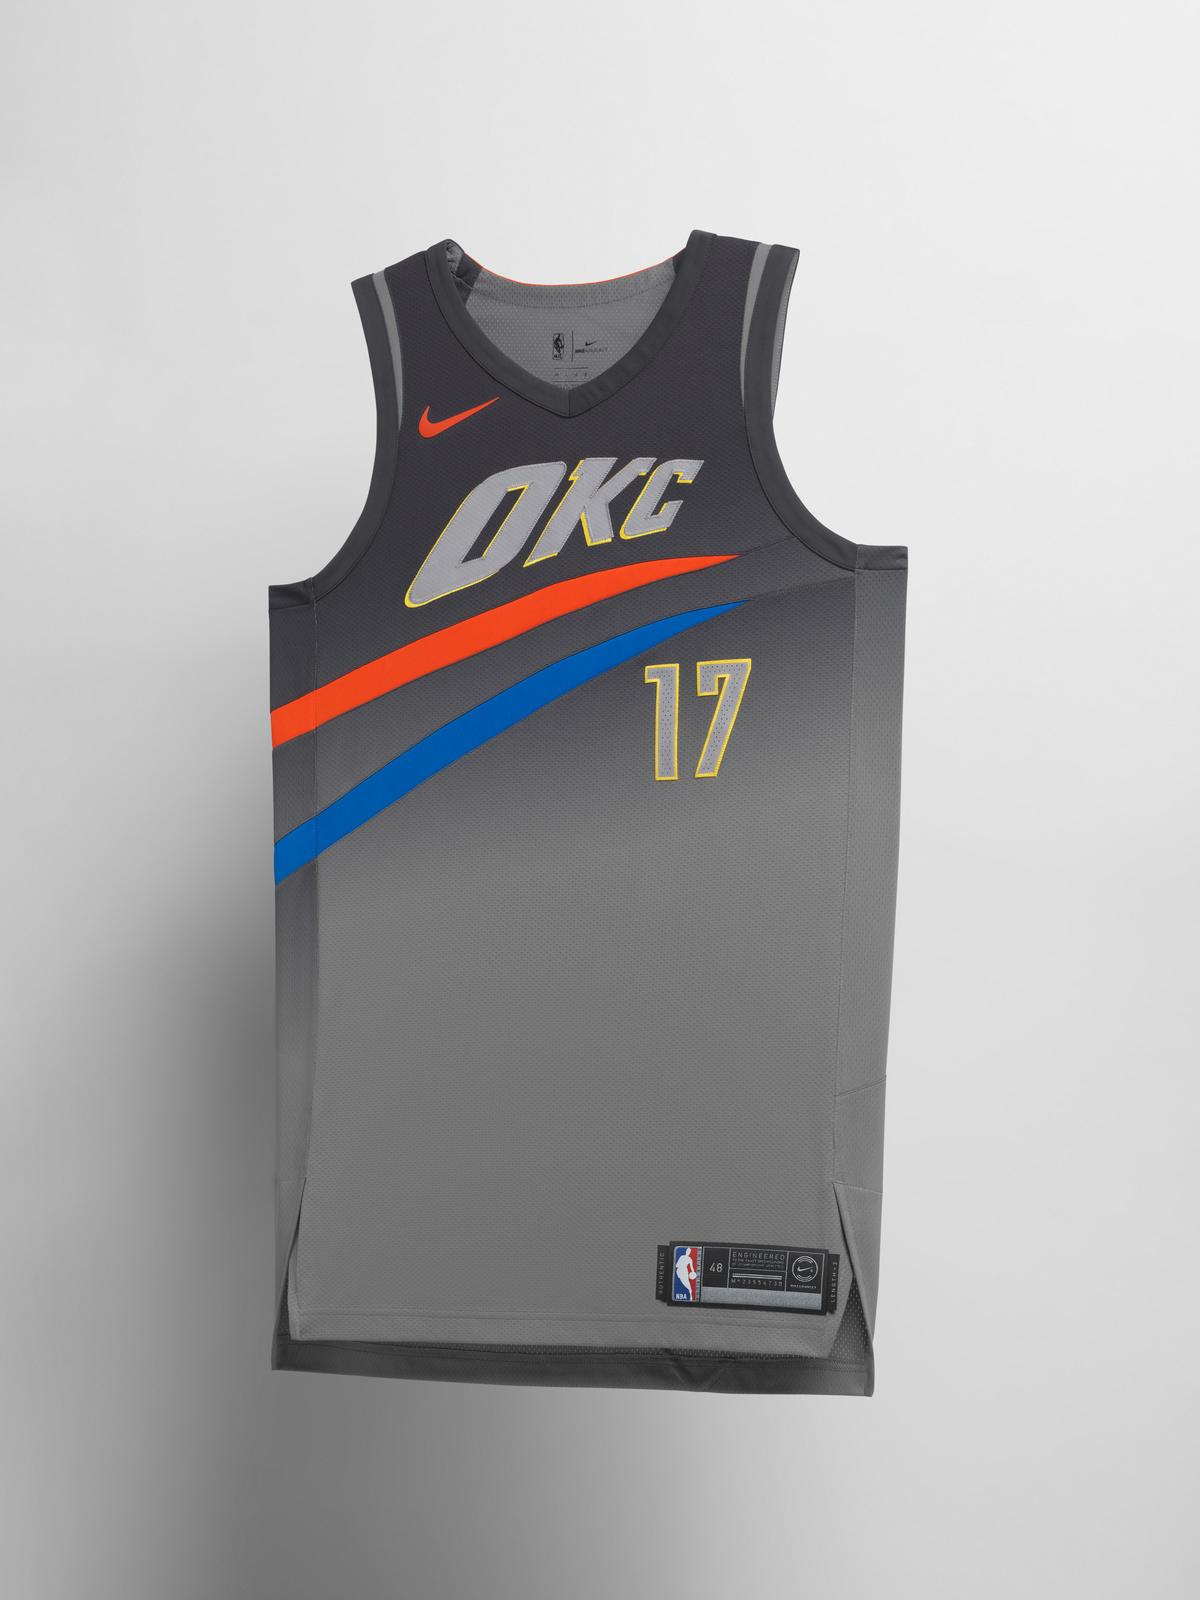 Ranking the new Nike \'City\' uniforms